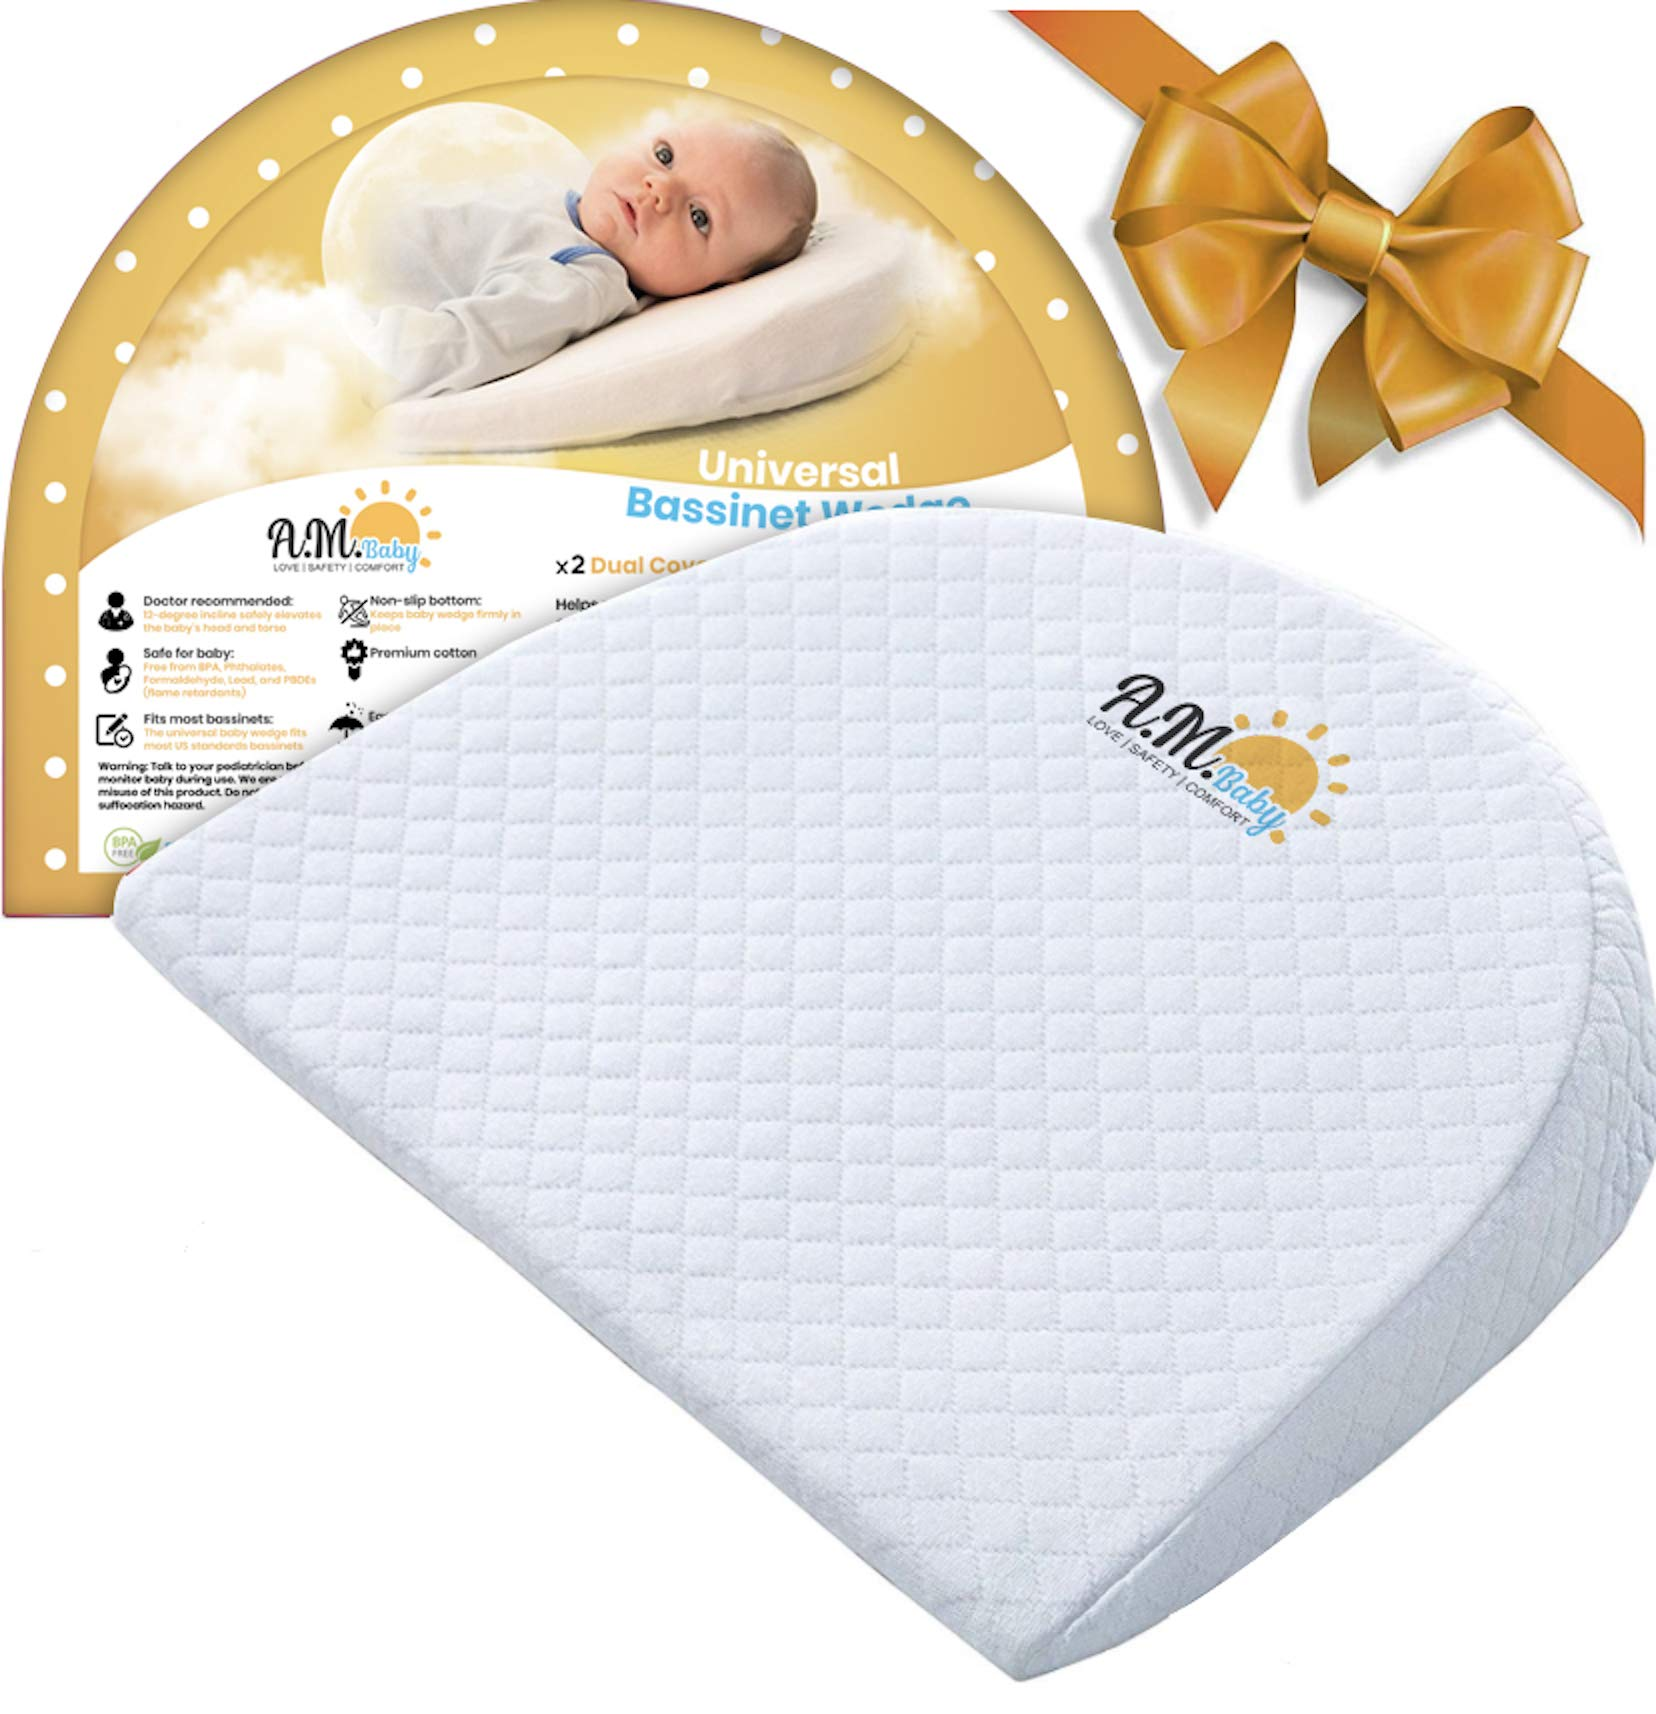 Universal Baby Bassinet Wedge for Acid Reflux, Spit ups, Colic Relief   Elevated Incline Pillow for Better Night Sleep for Newborn  Washable Cotton and Waterproof  Nursery Safe   by A.M. Baby